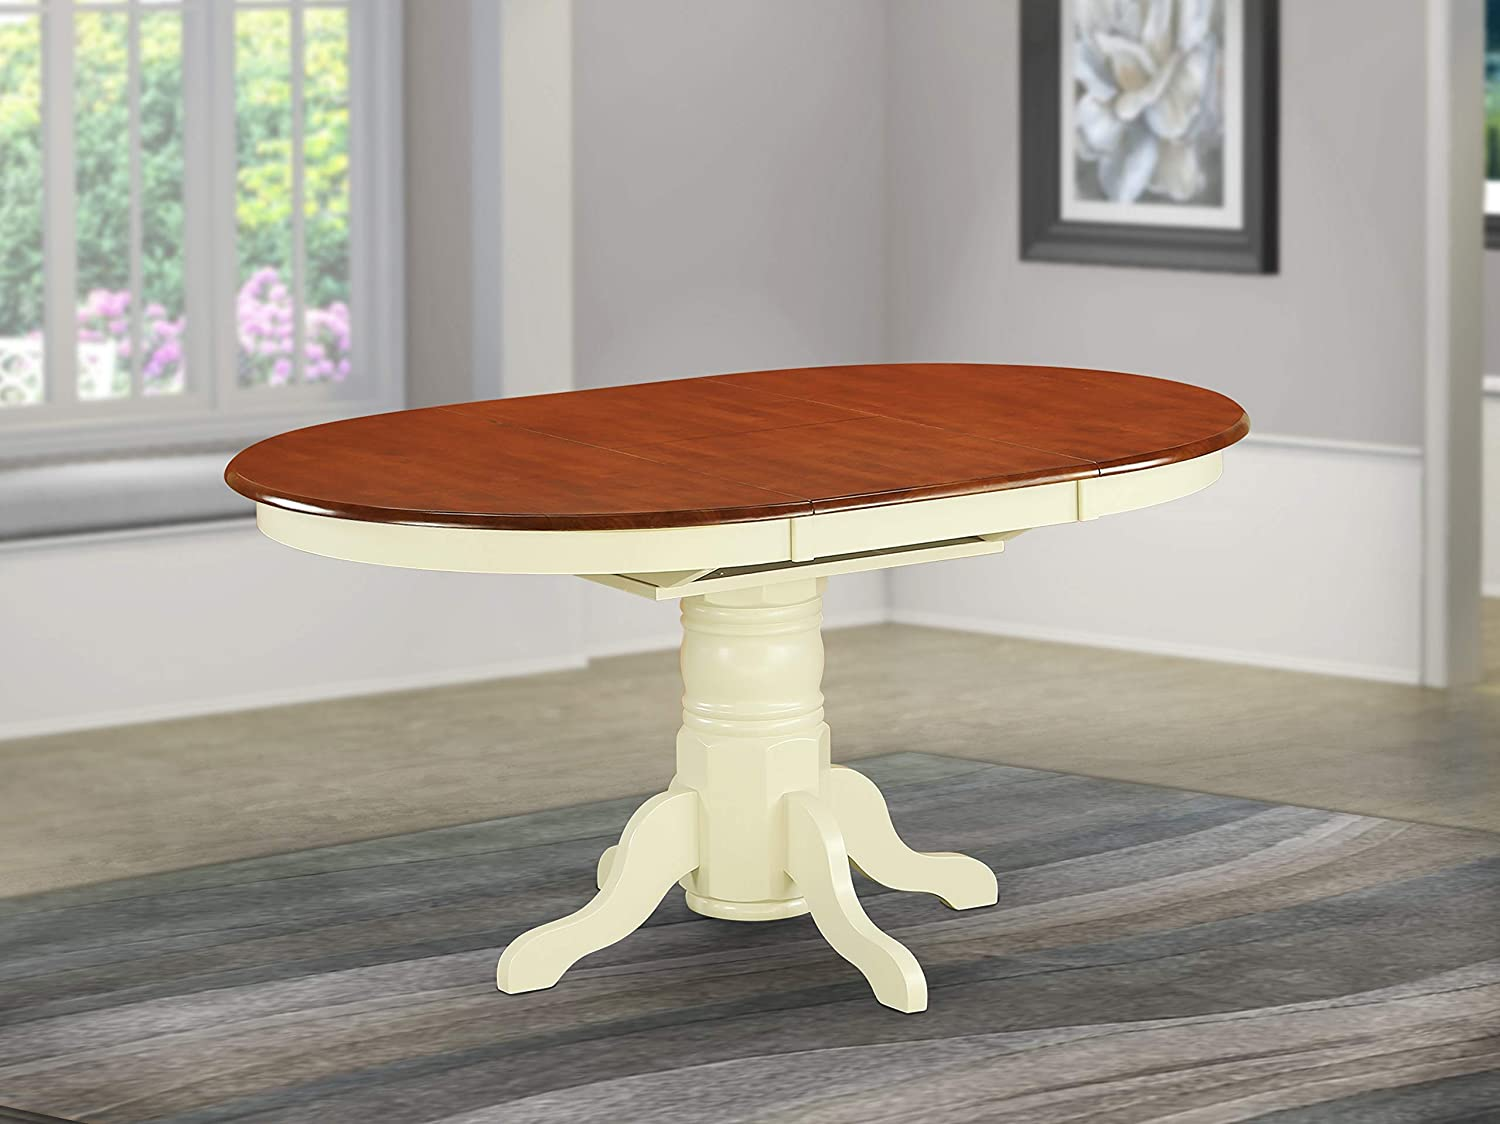 East West Furniture AVT-WHI-TP Oval 42/60-Inch Table with 18-Inch Butterfly Leaf, Medium, Buttermilk and Cherry Finish